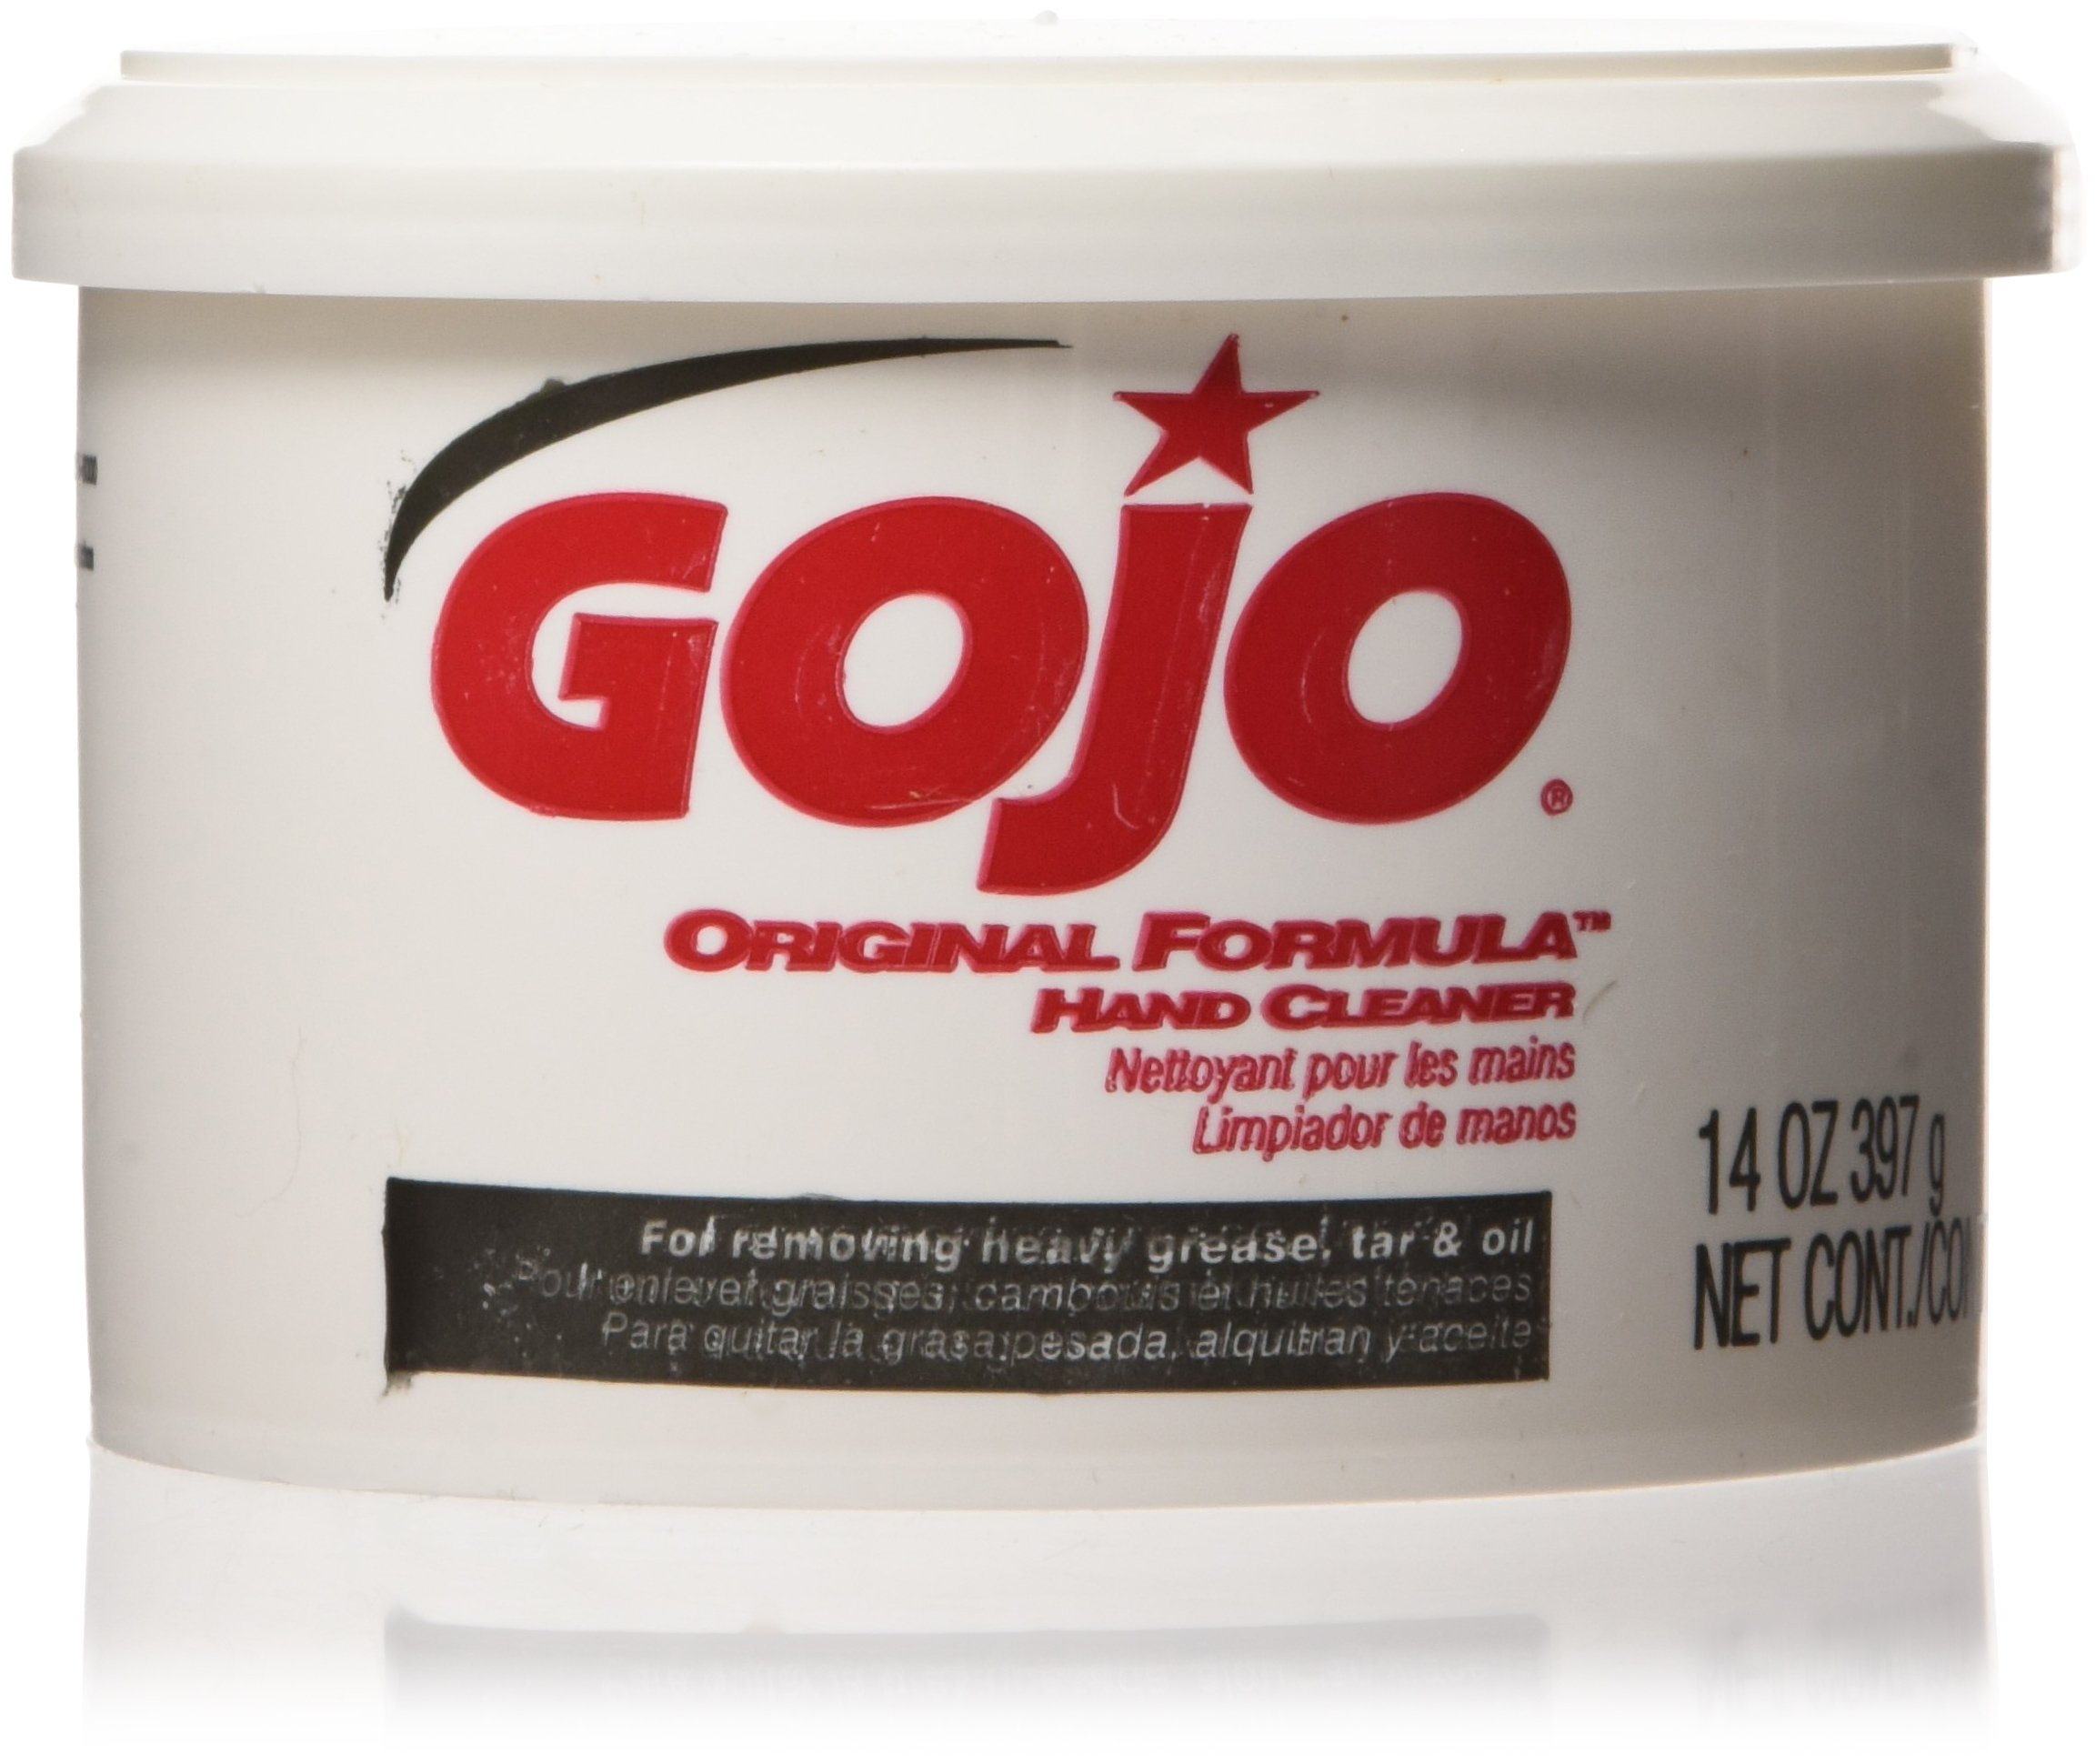 GOJO 1109 Original Hand Cleaner. 14 oz.